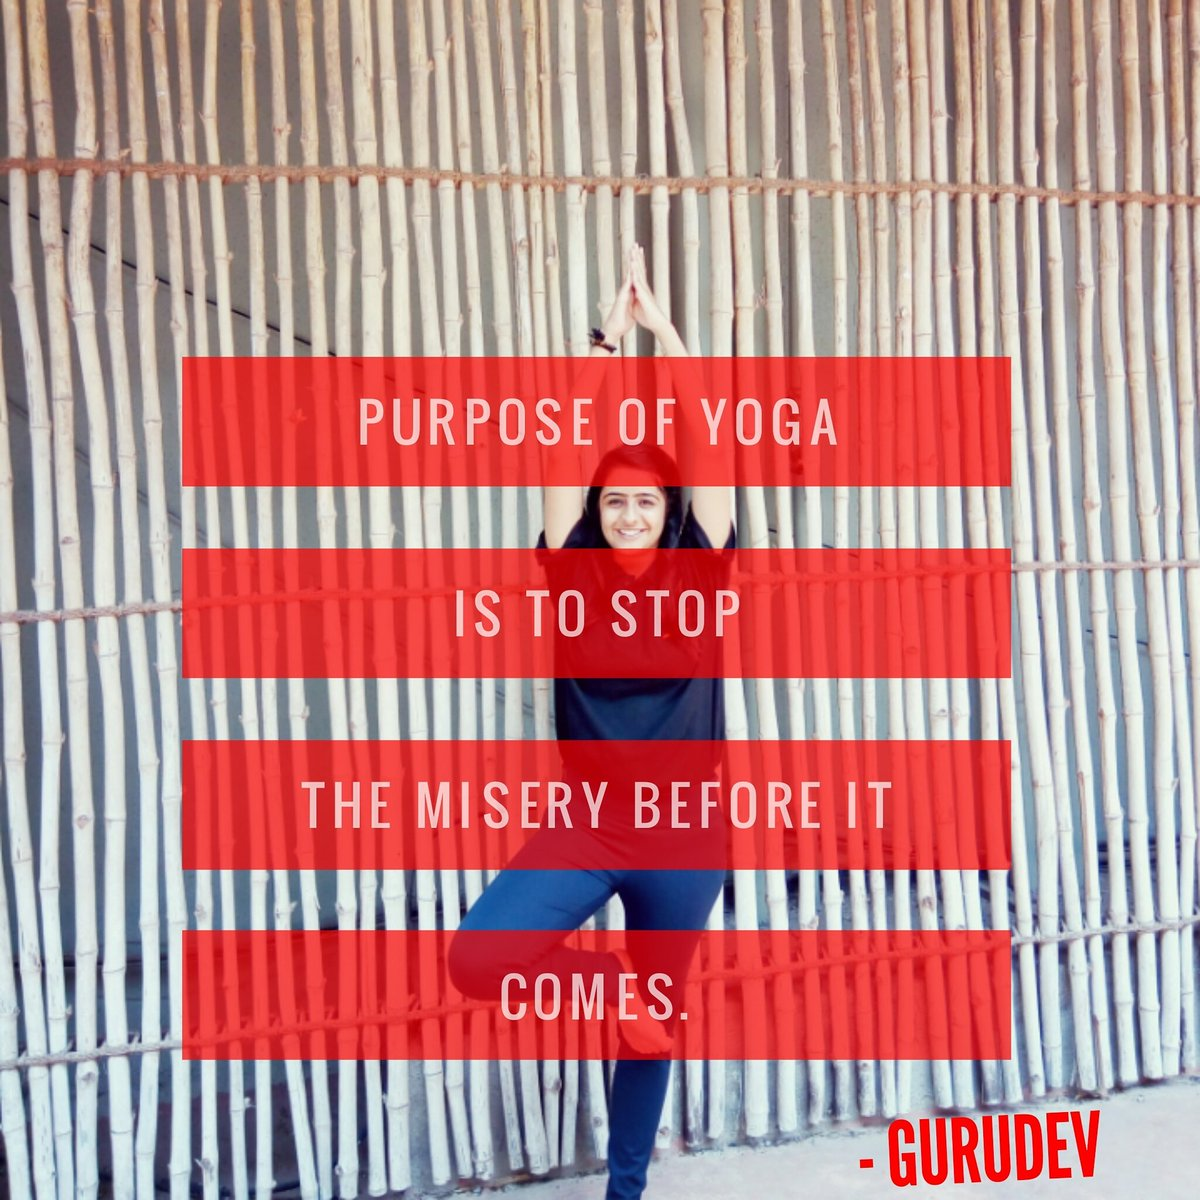 jai gurudev yoga quote image the purpose of is to stop the